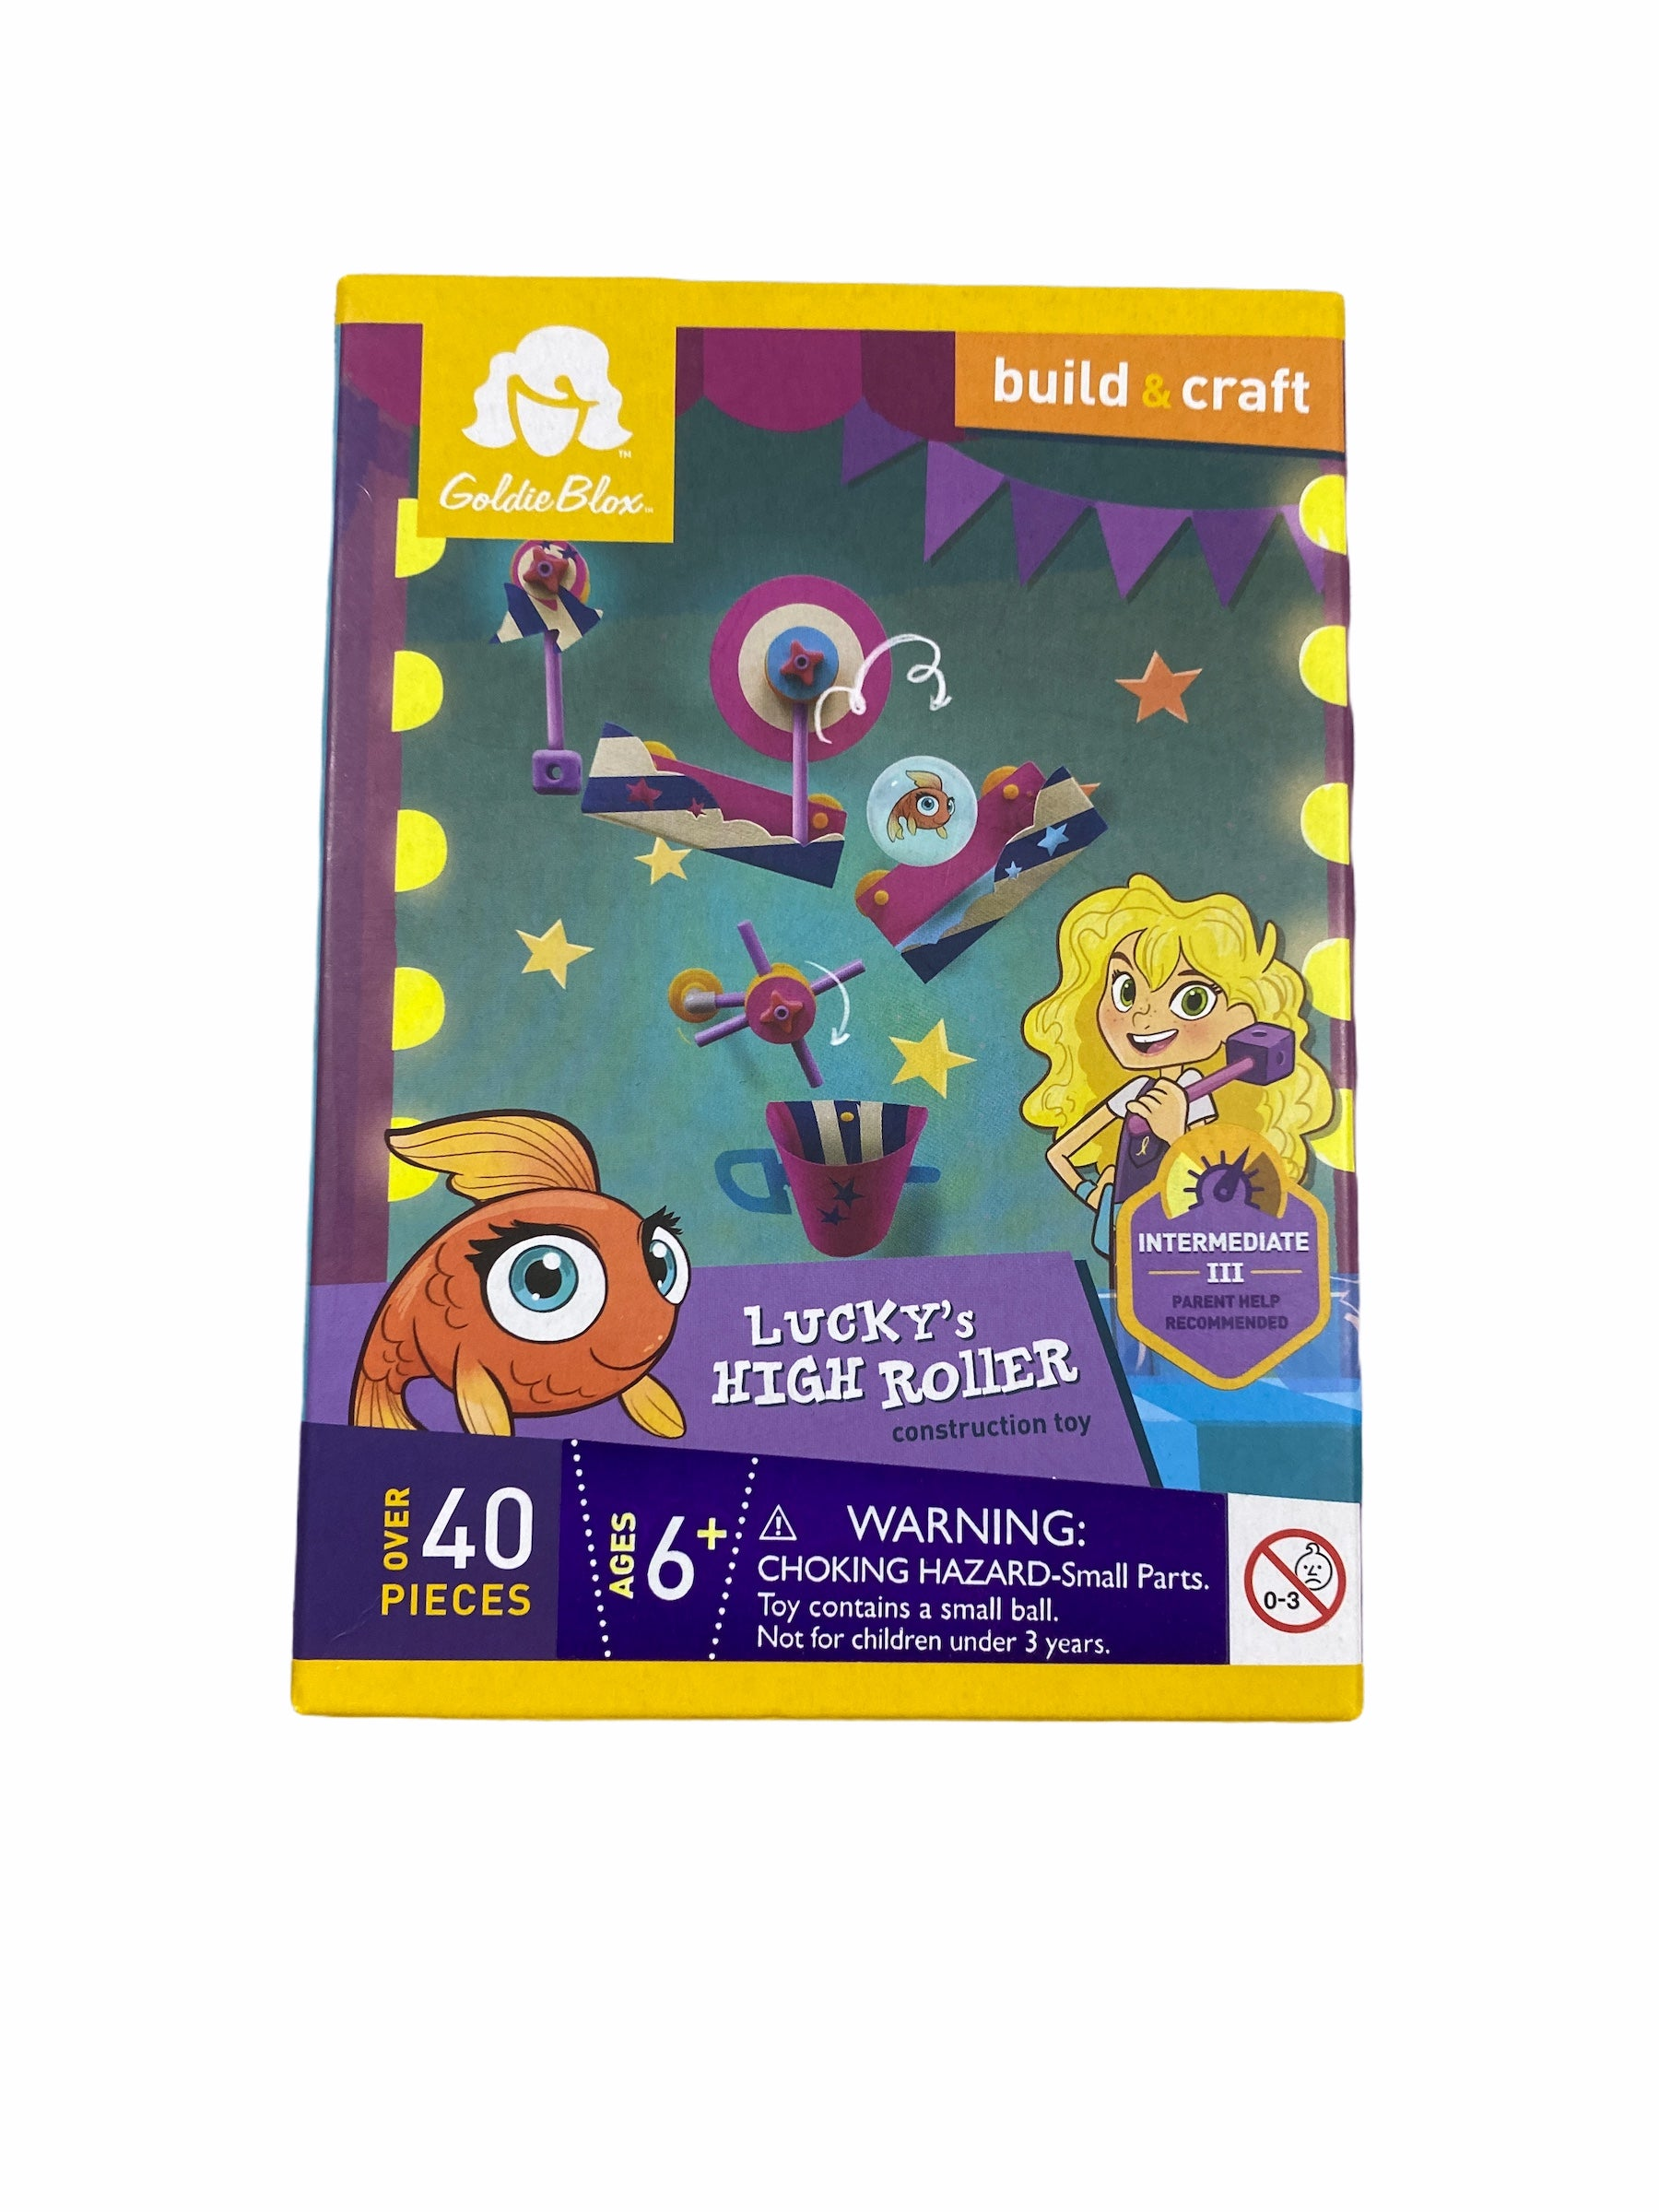 Goldie Blox Lucky's High Roller Building & Craft Set